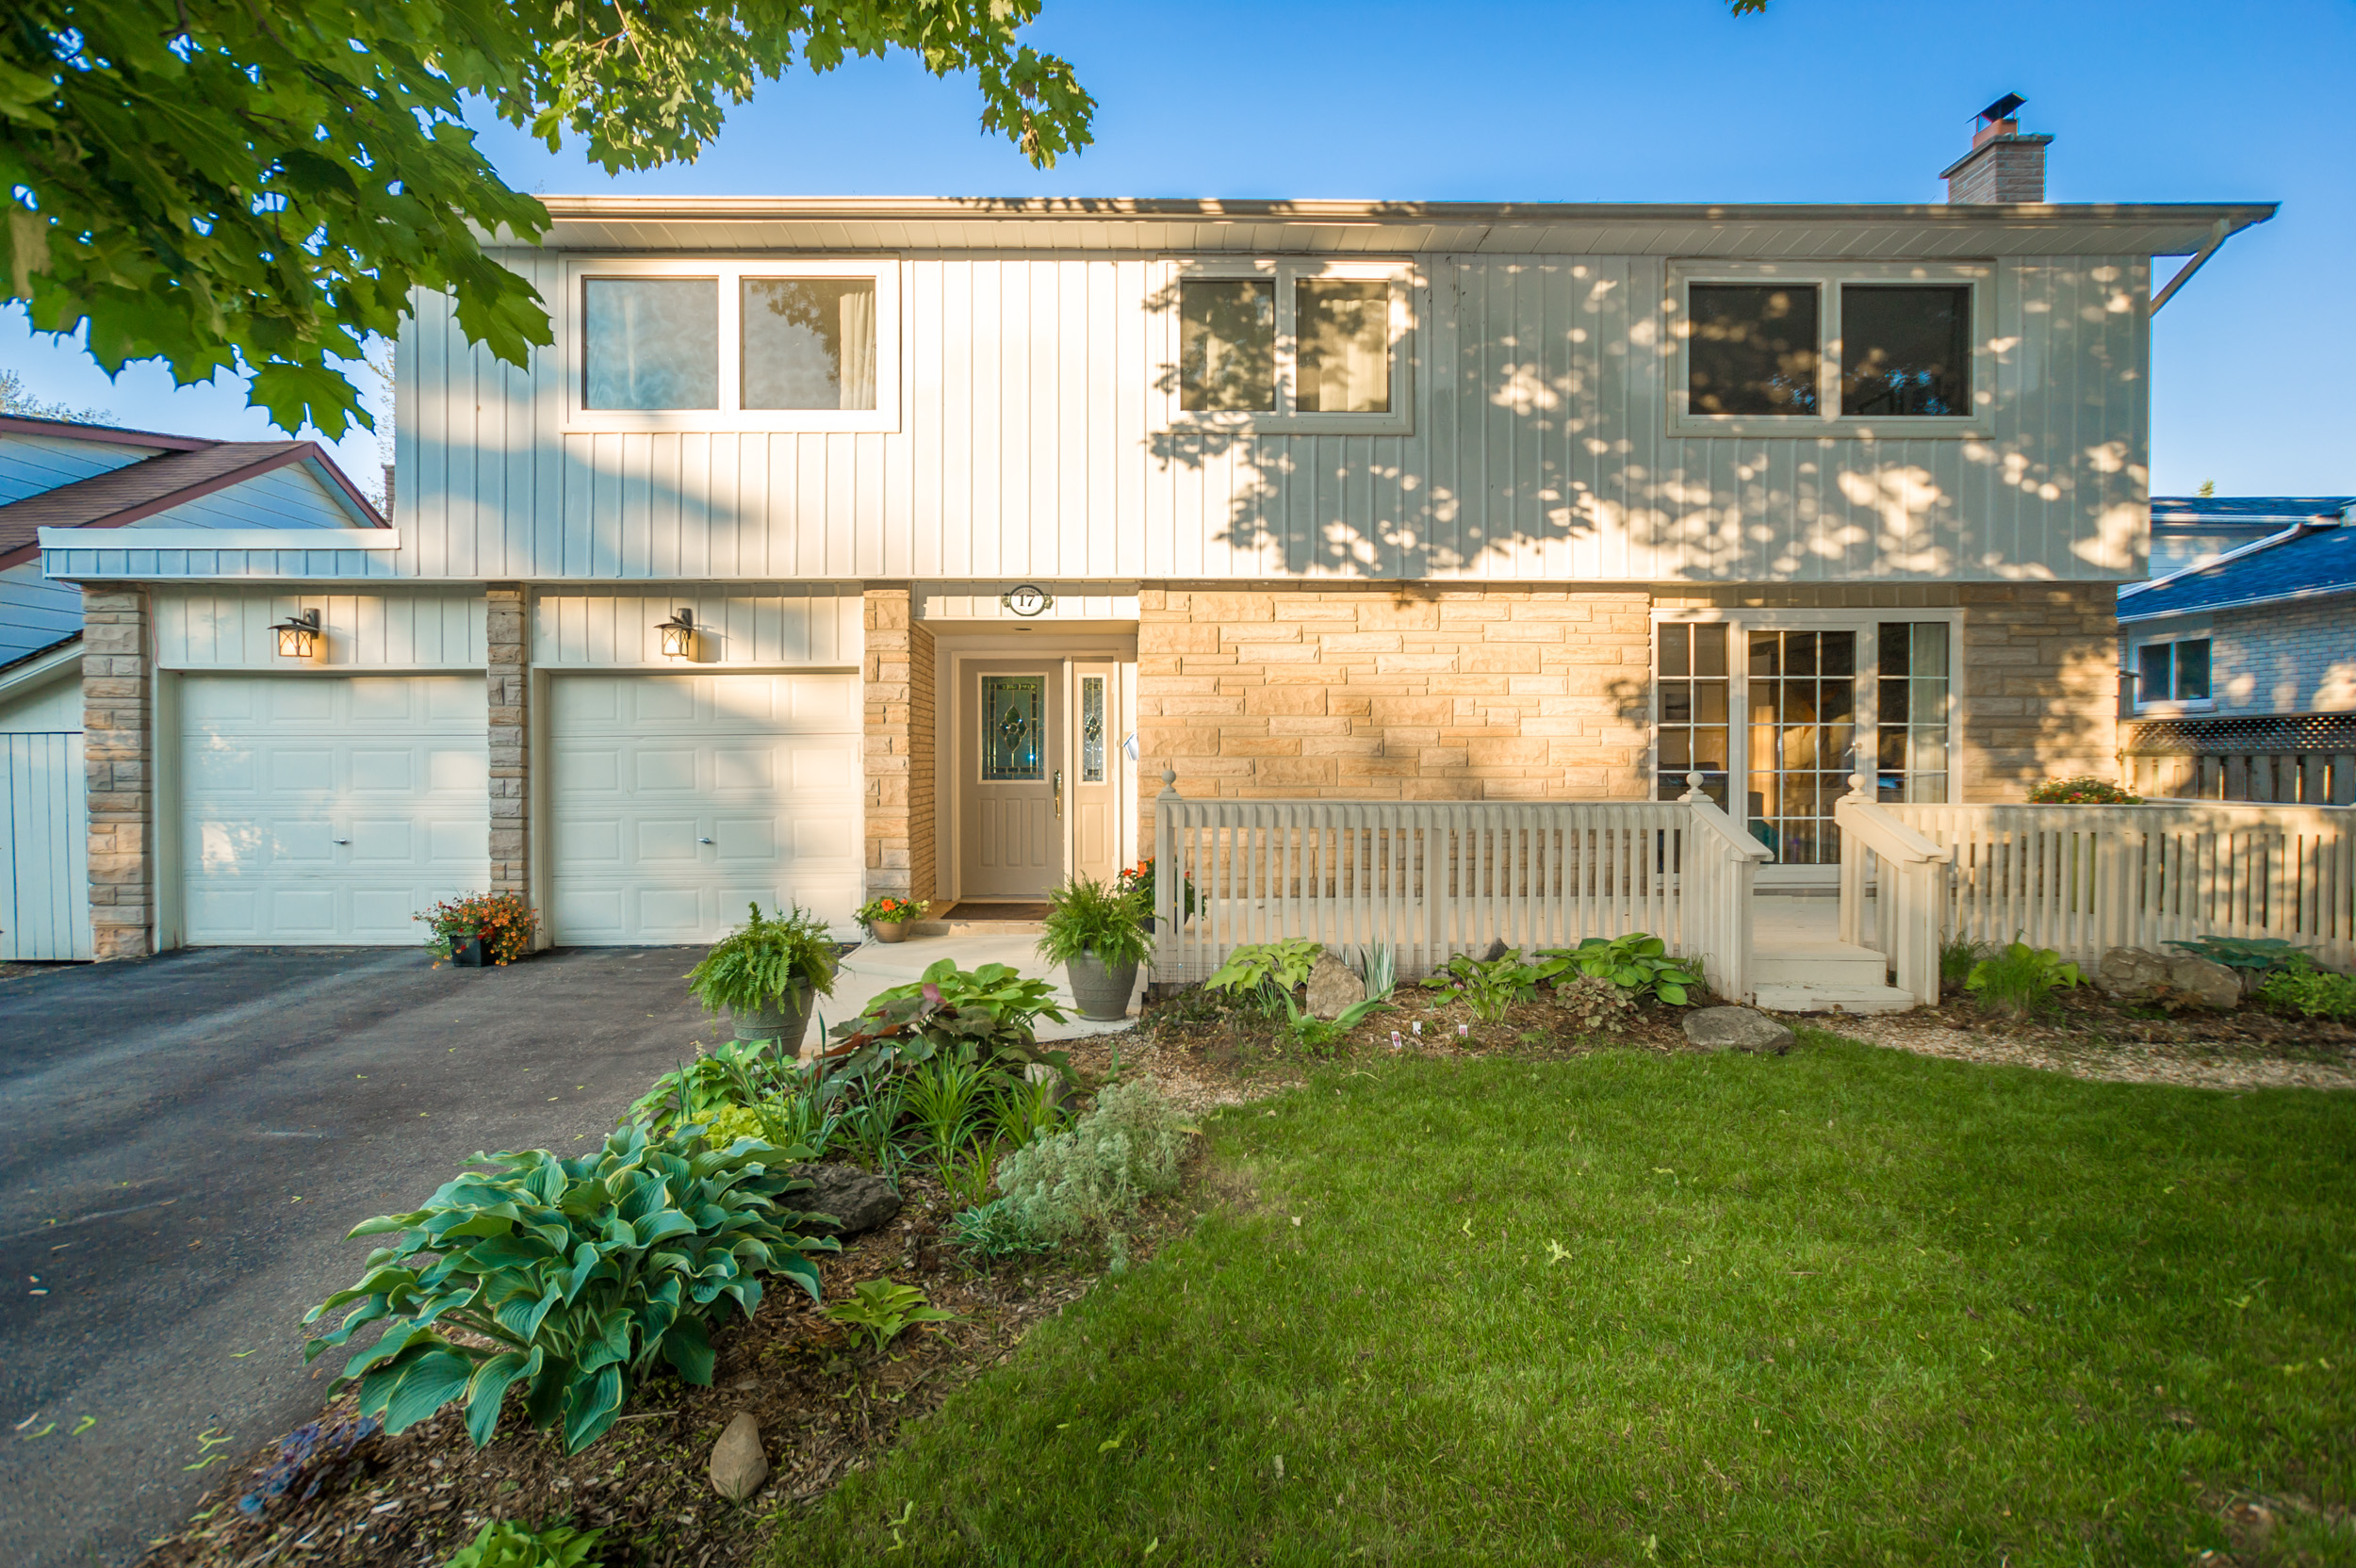 17 Emily Carr Creseent - Sold Over List!